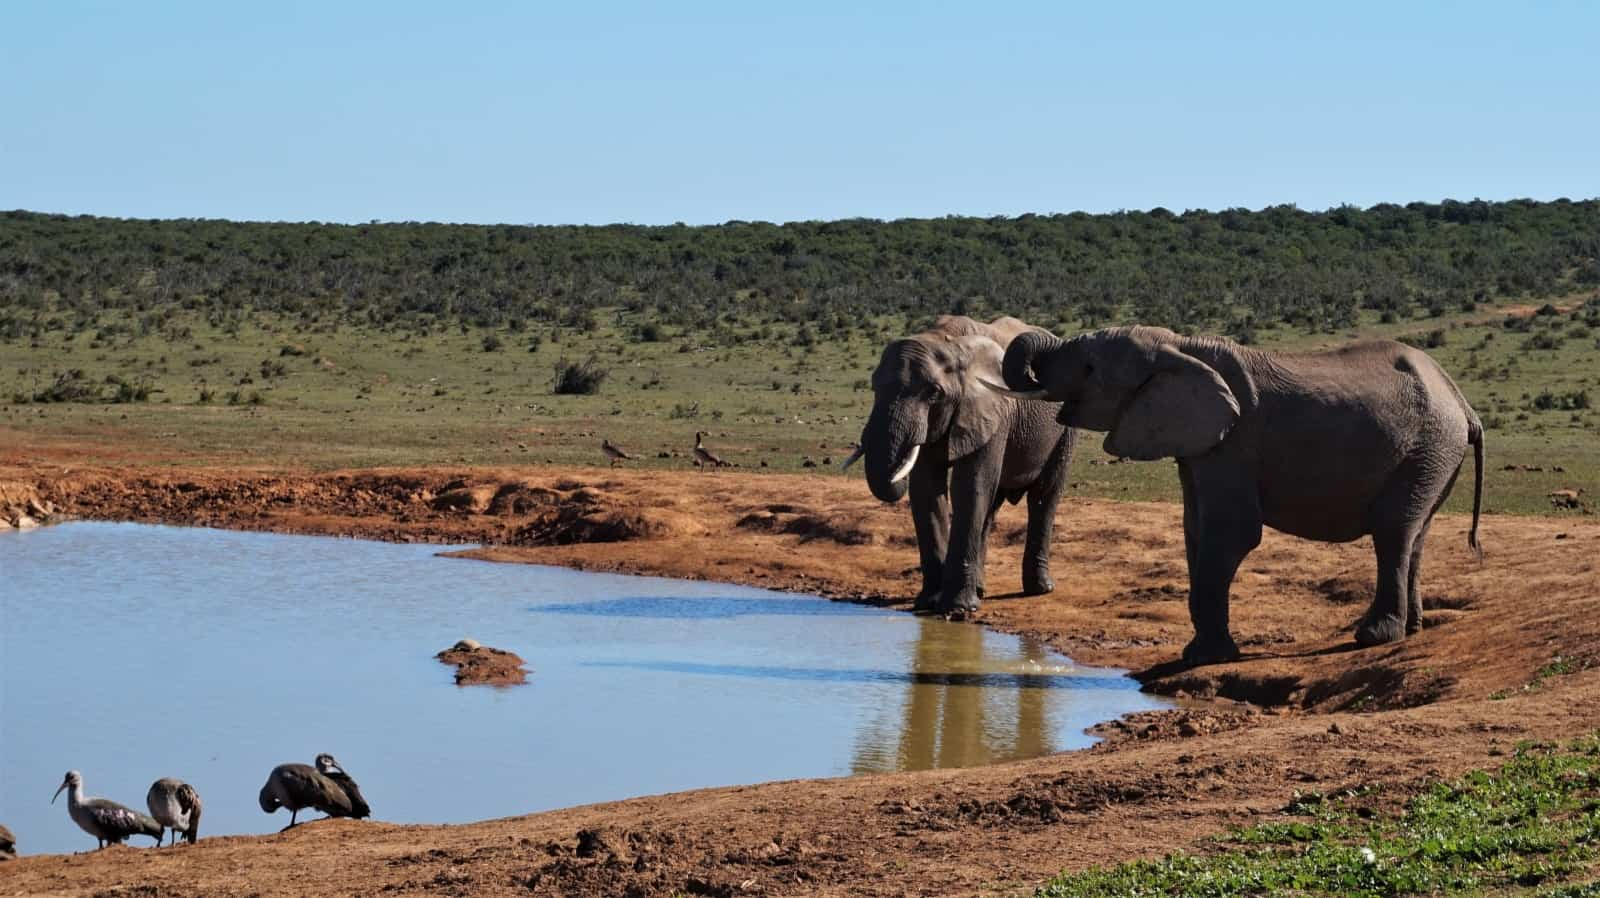 Elephants at Hapoor Dam, Addo Elephant National Park